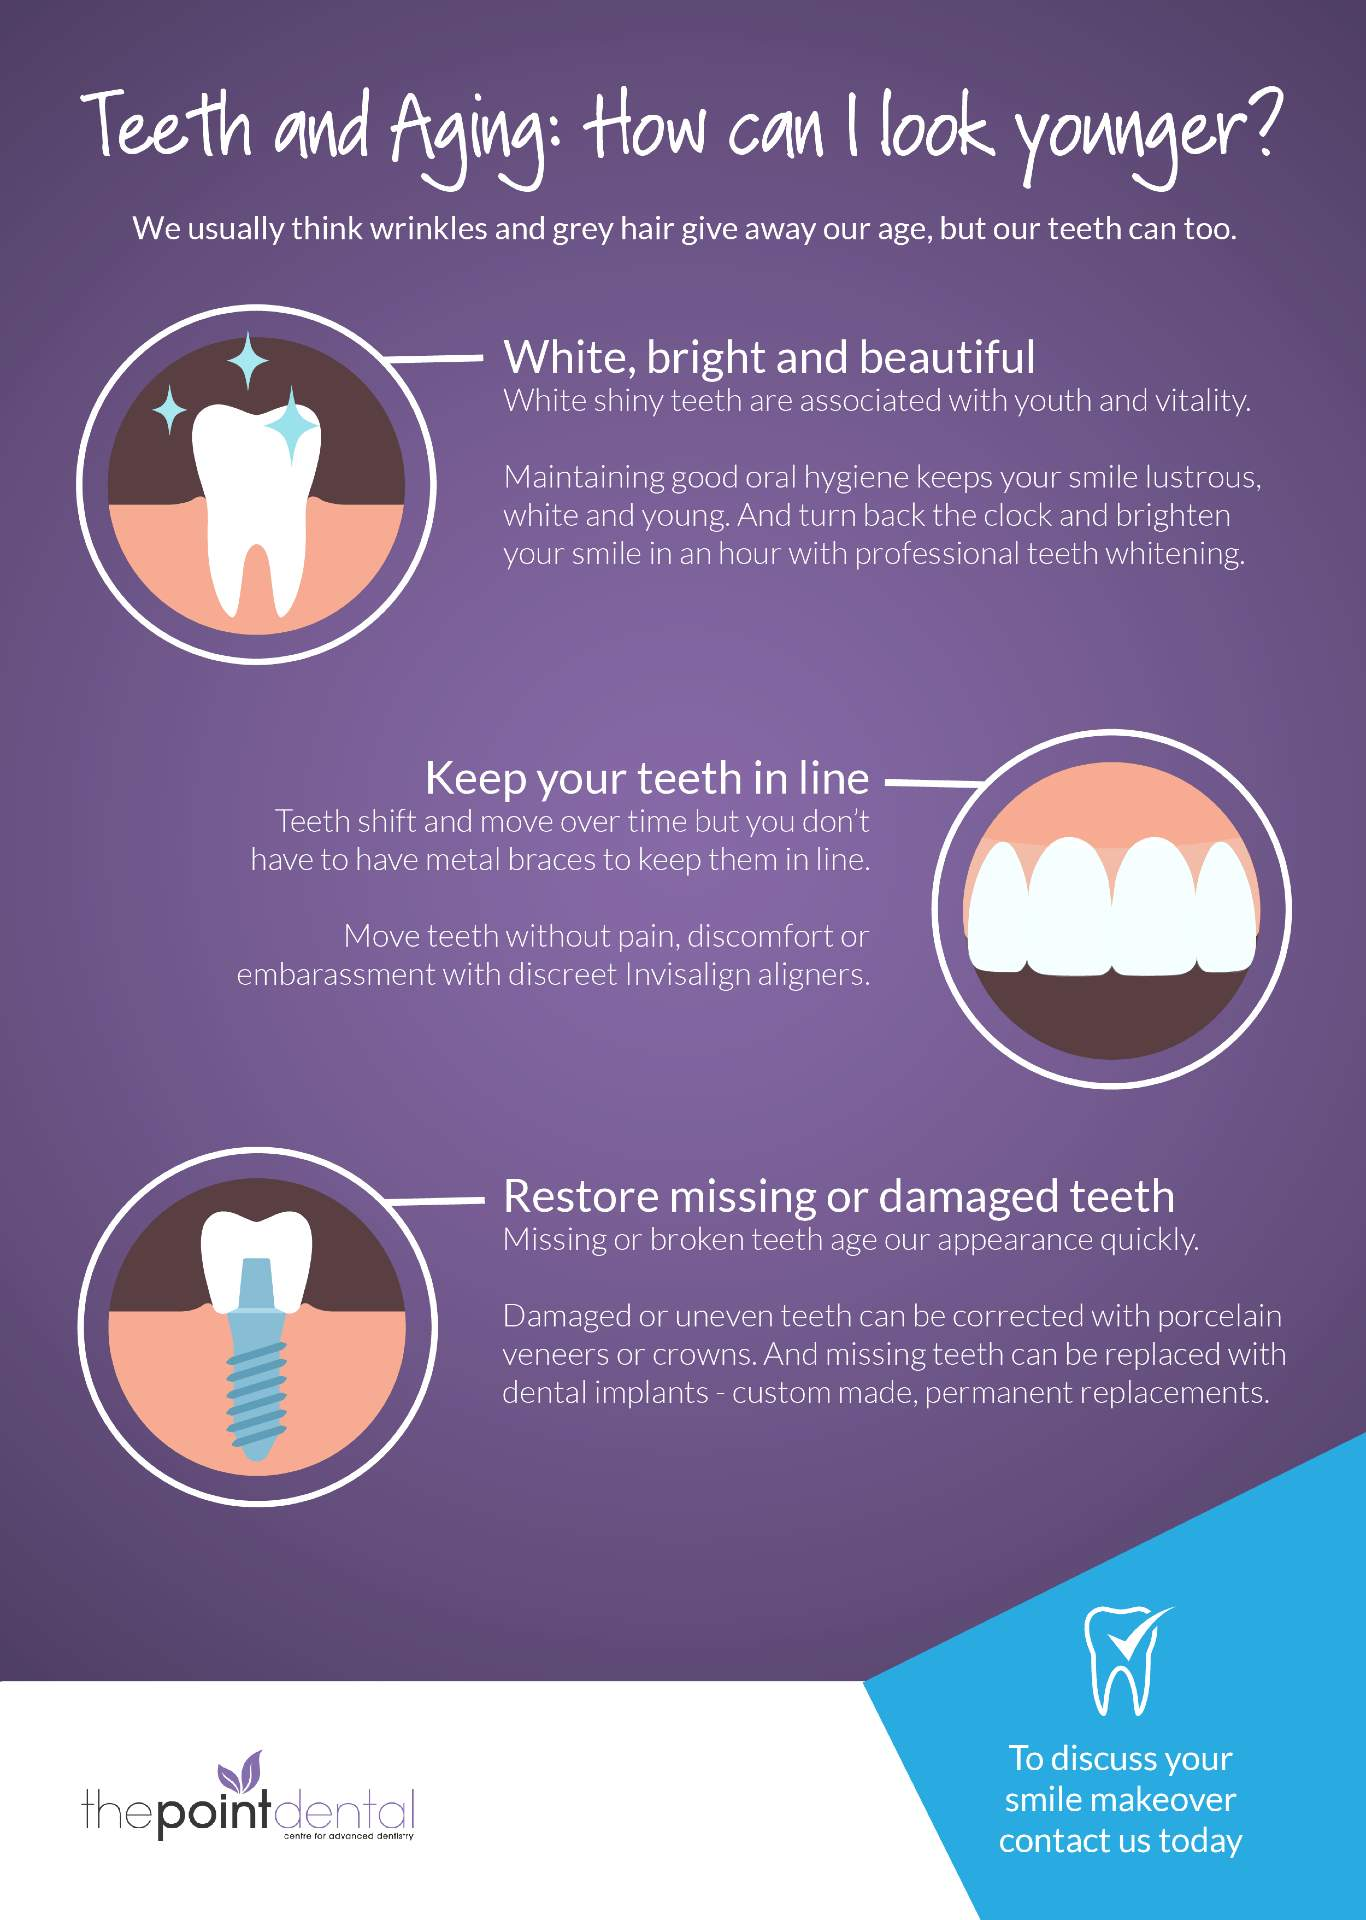 teeth and aging infographic